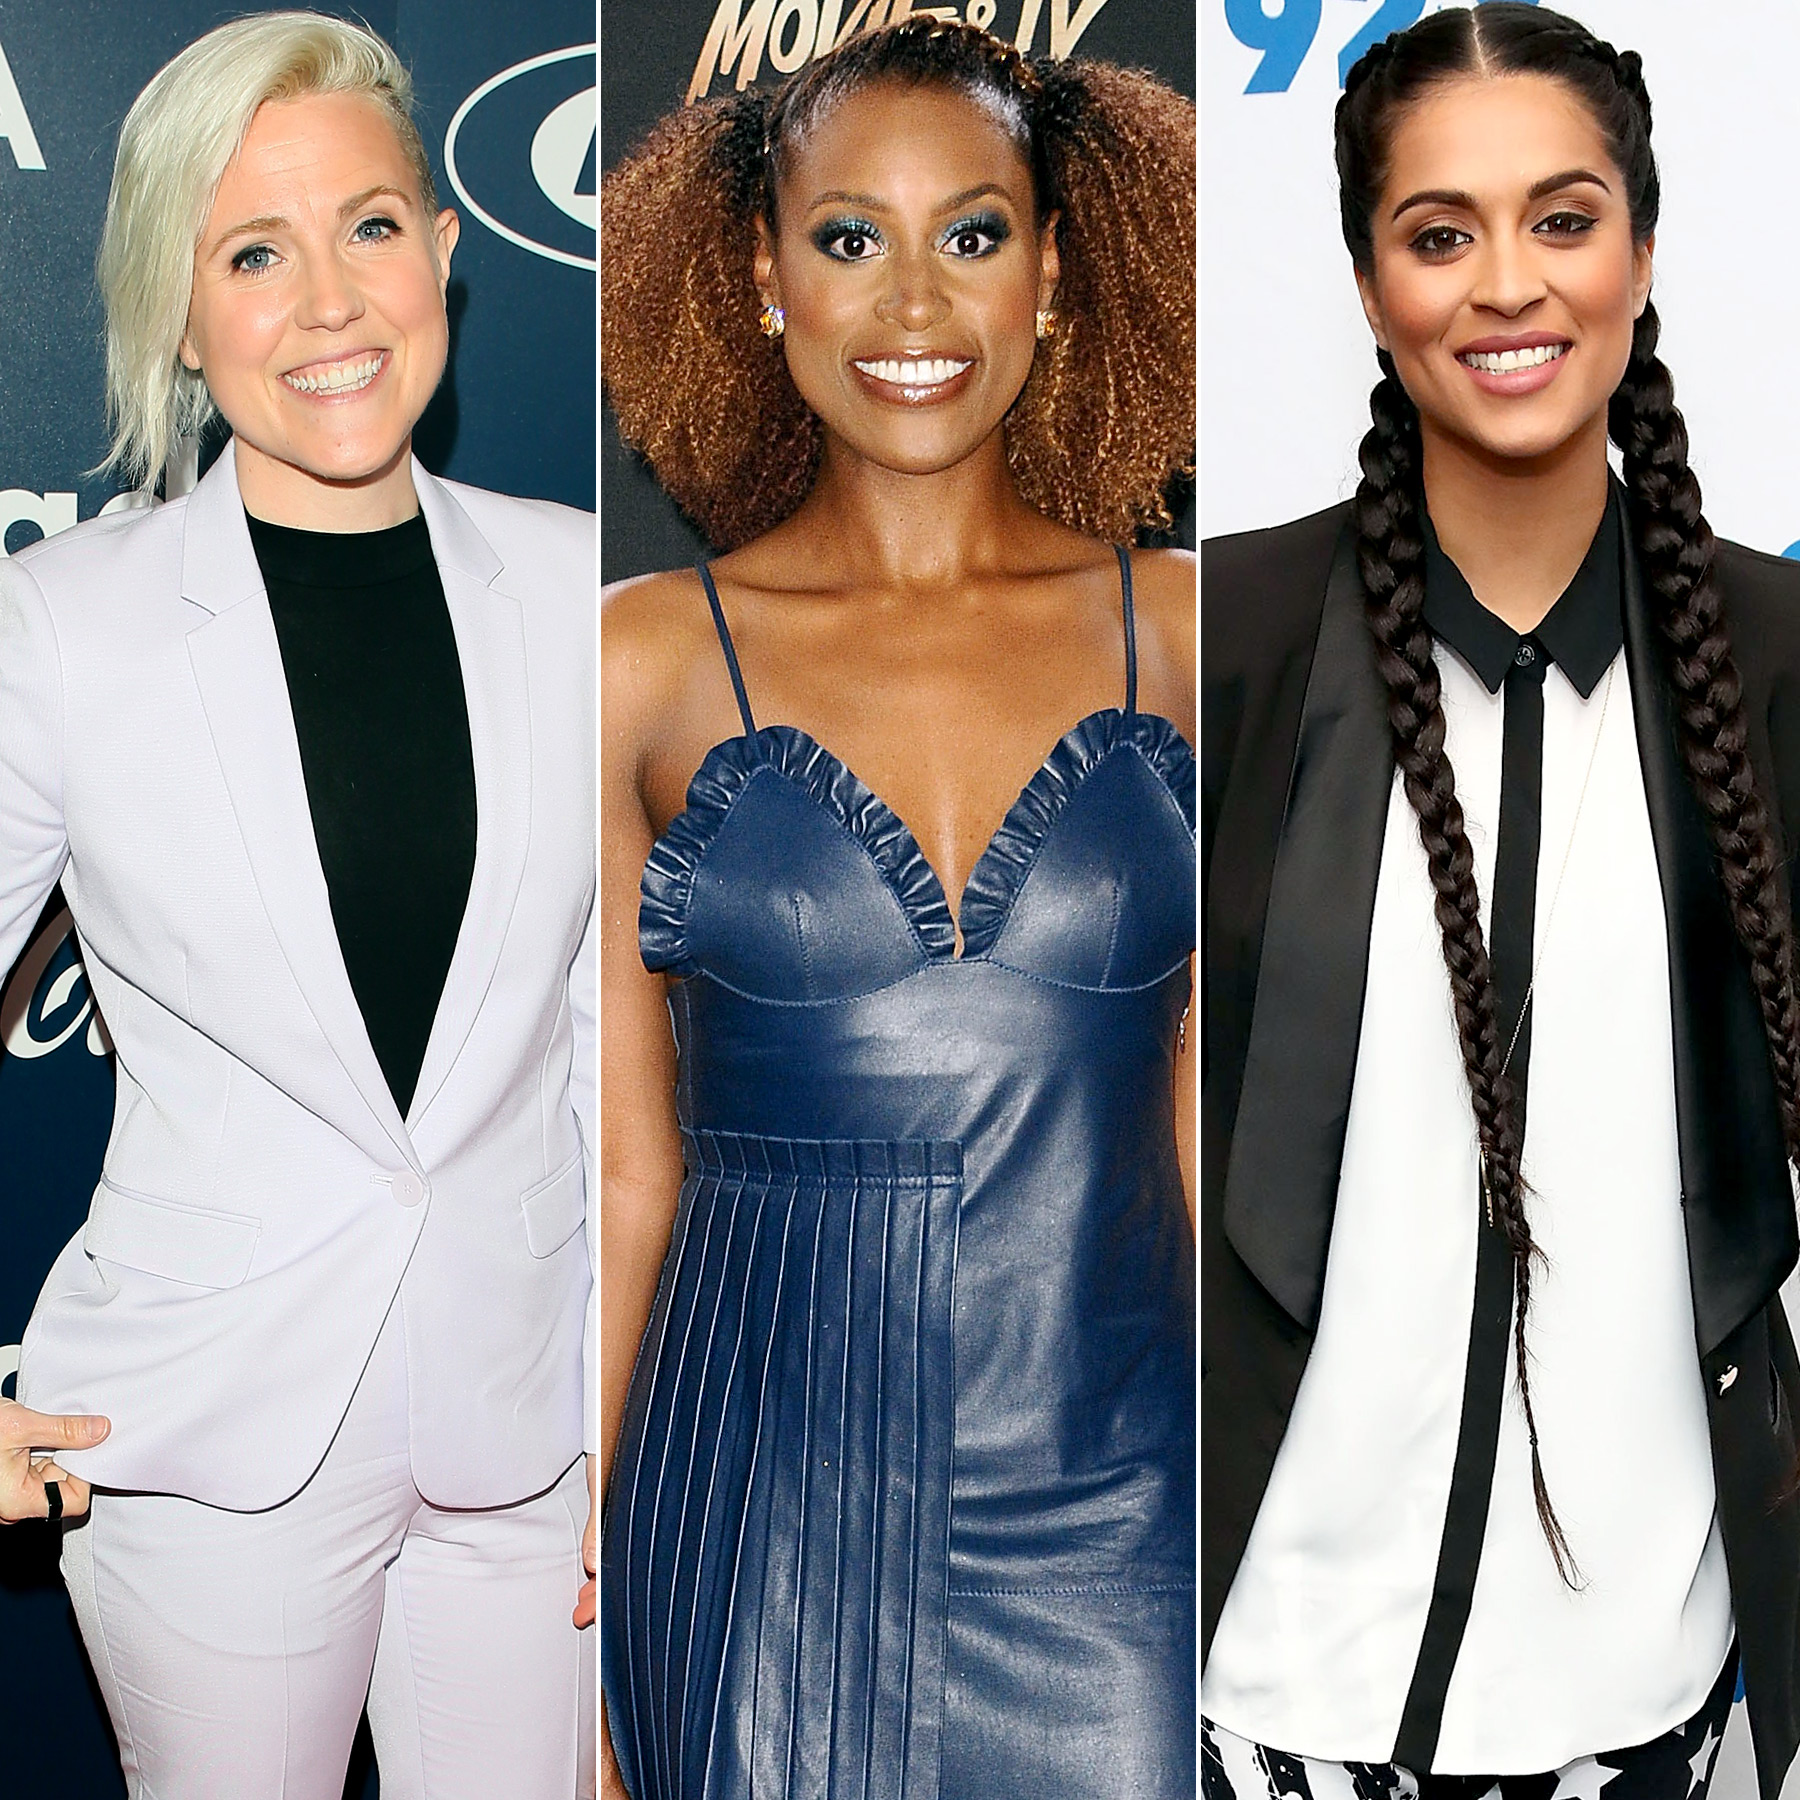 Hannah Hart, Issa Rae and Lilly Singh